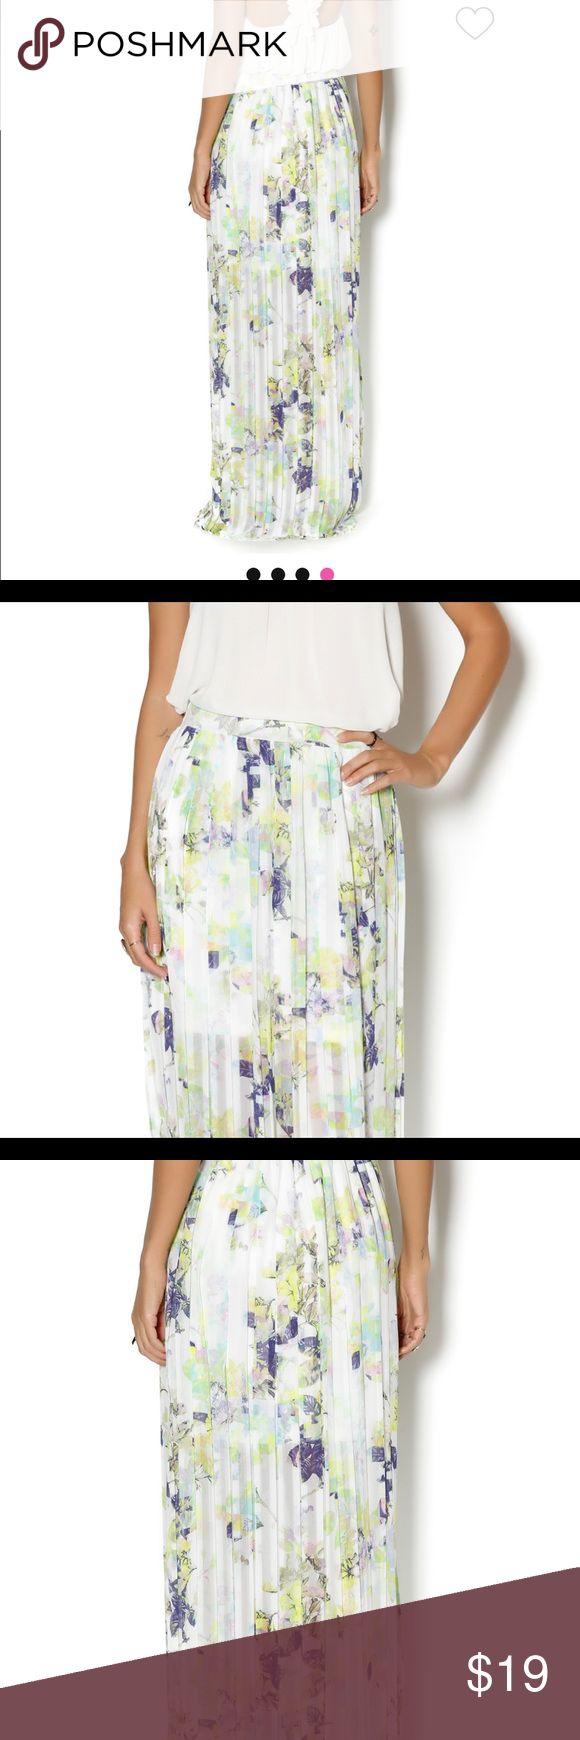 BCBGeneration whisper white multi Maxi Skirt Bedecked with a fluoro-bright Digi Bloom print, this pleated maxi looks fresh with this season's nubby sweaters or a silky cami. BCBGeneration Skirts Maxi